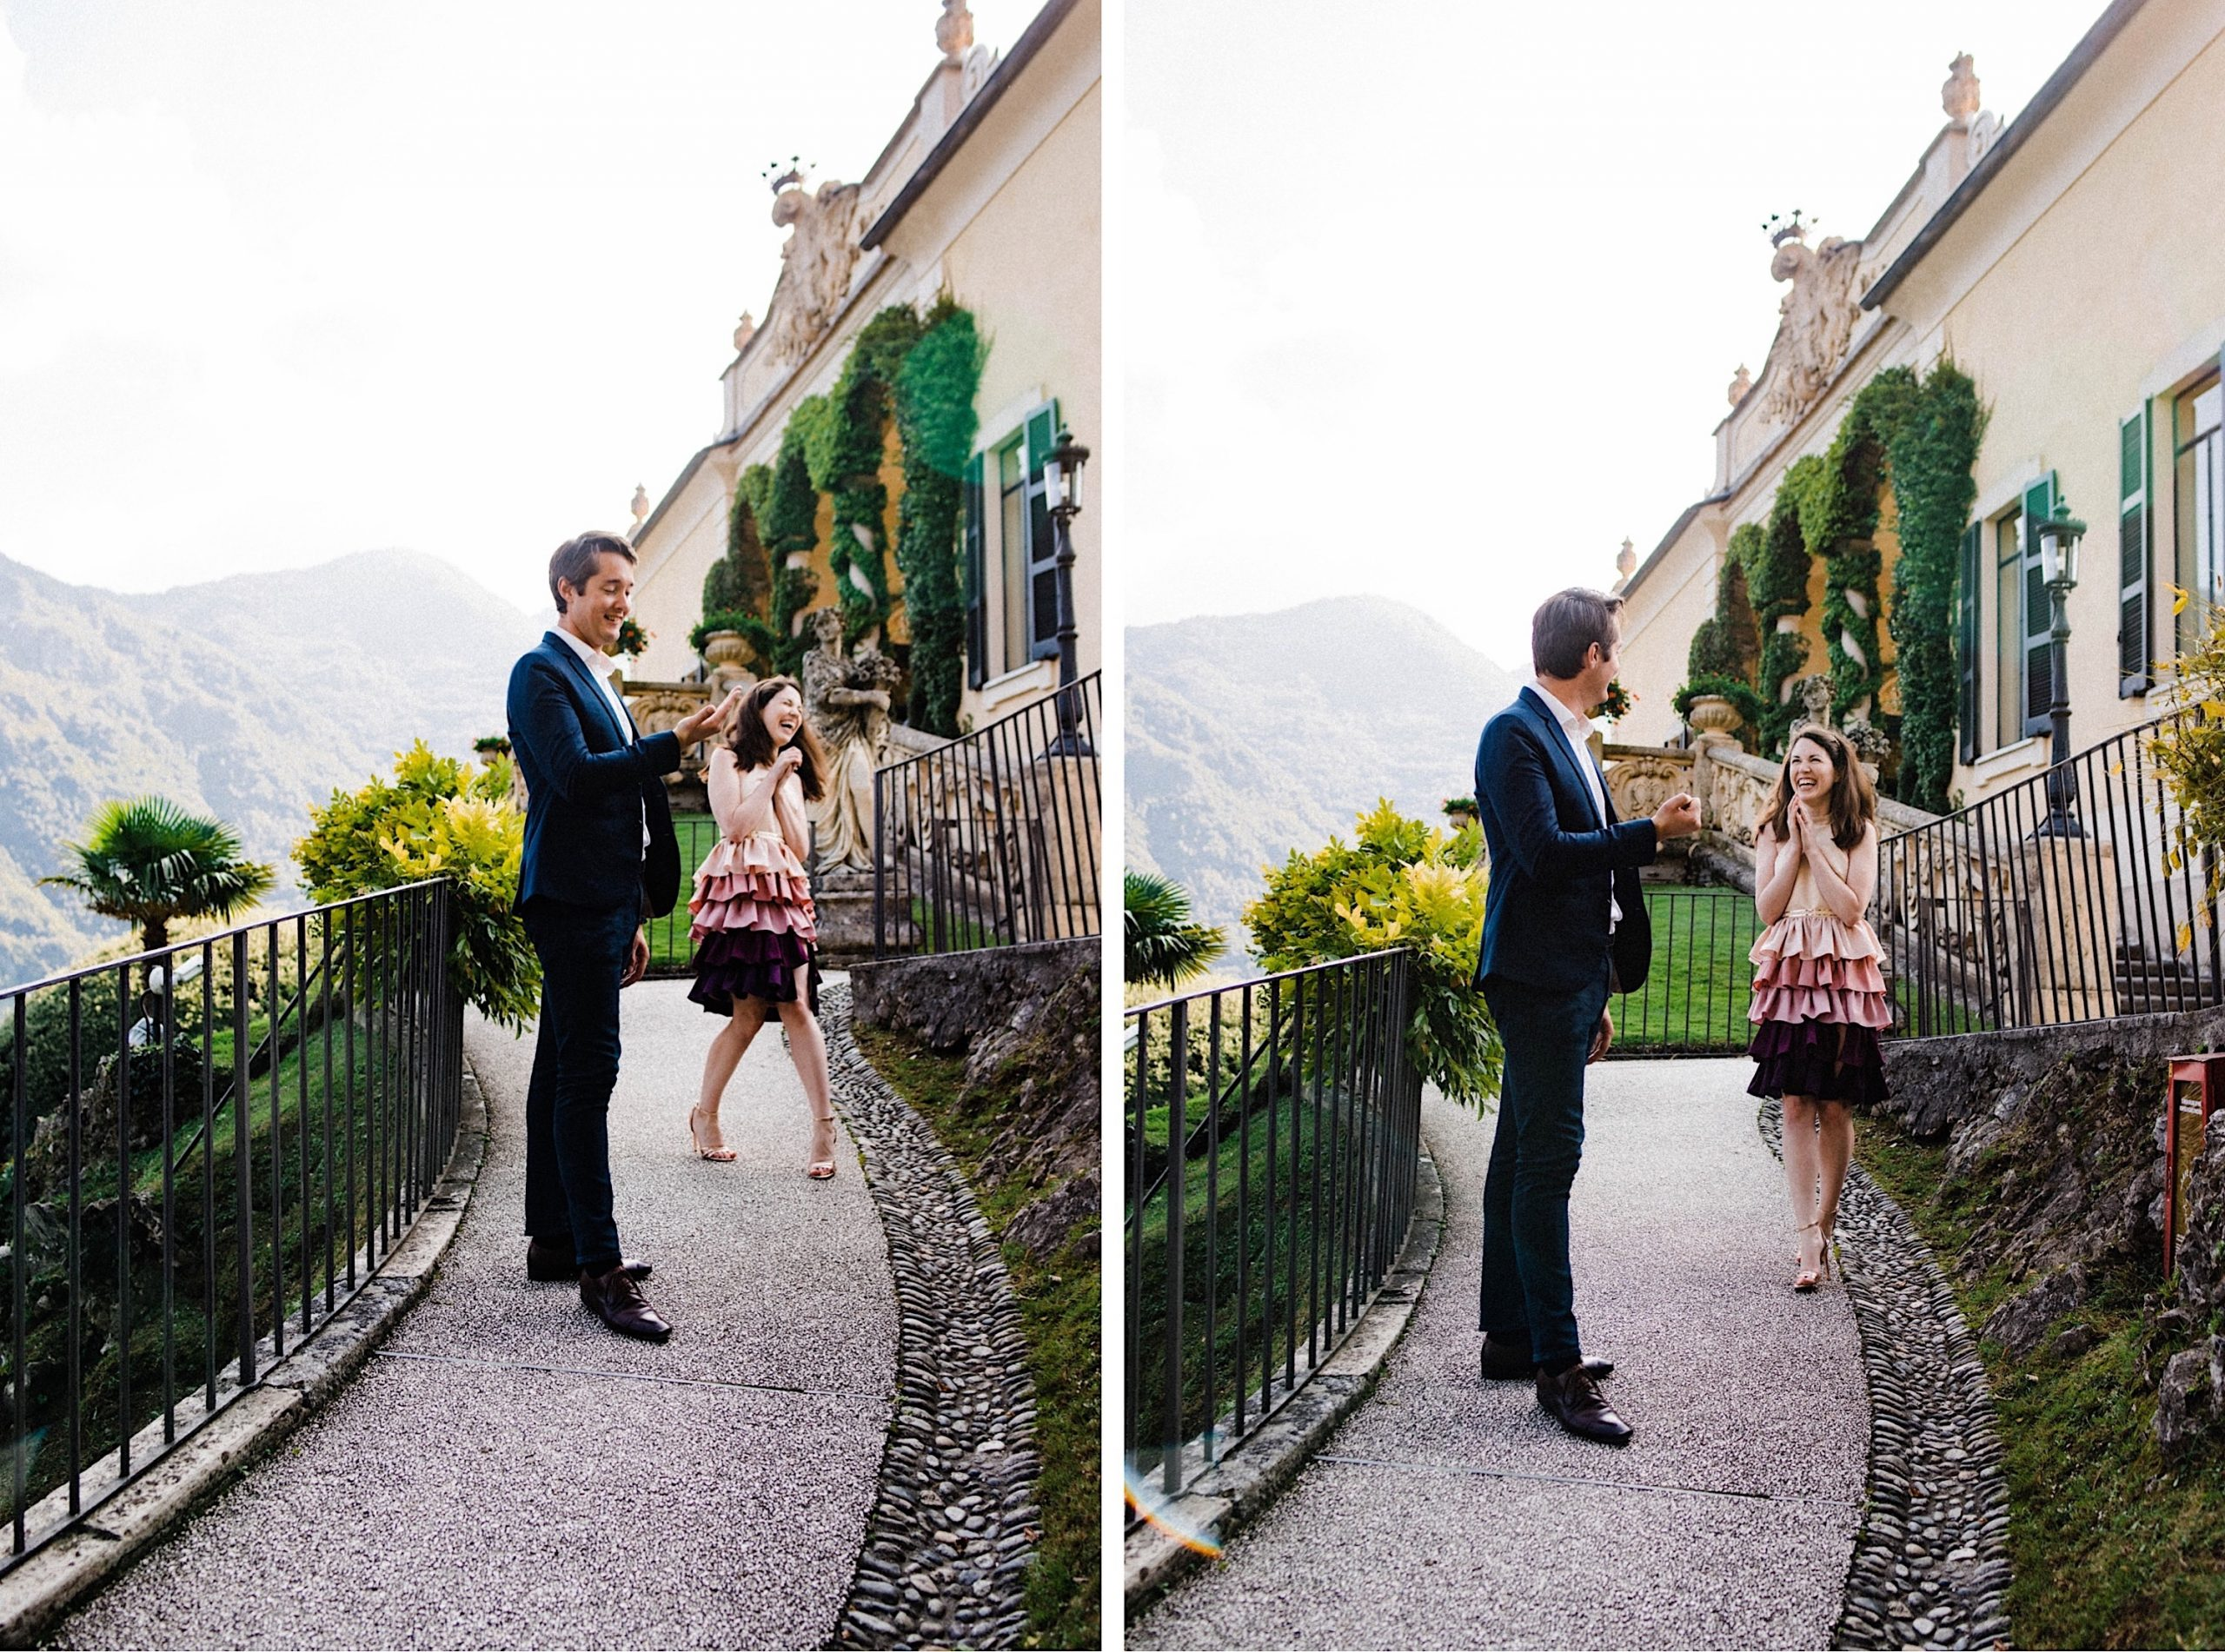 Two side-by-side images of a couple standing together laughing on a pathway leading up to Villa Balbianello.